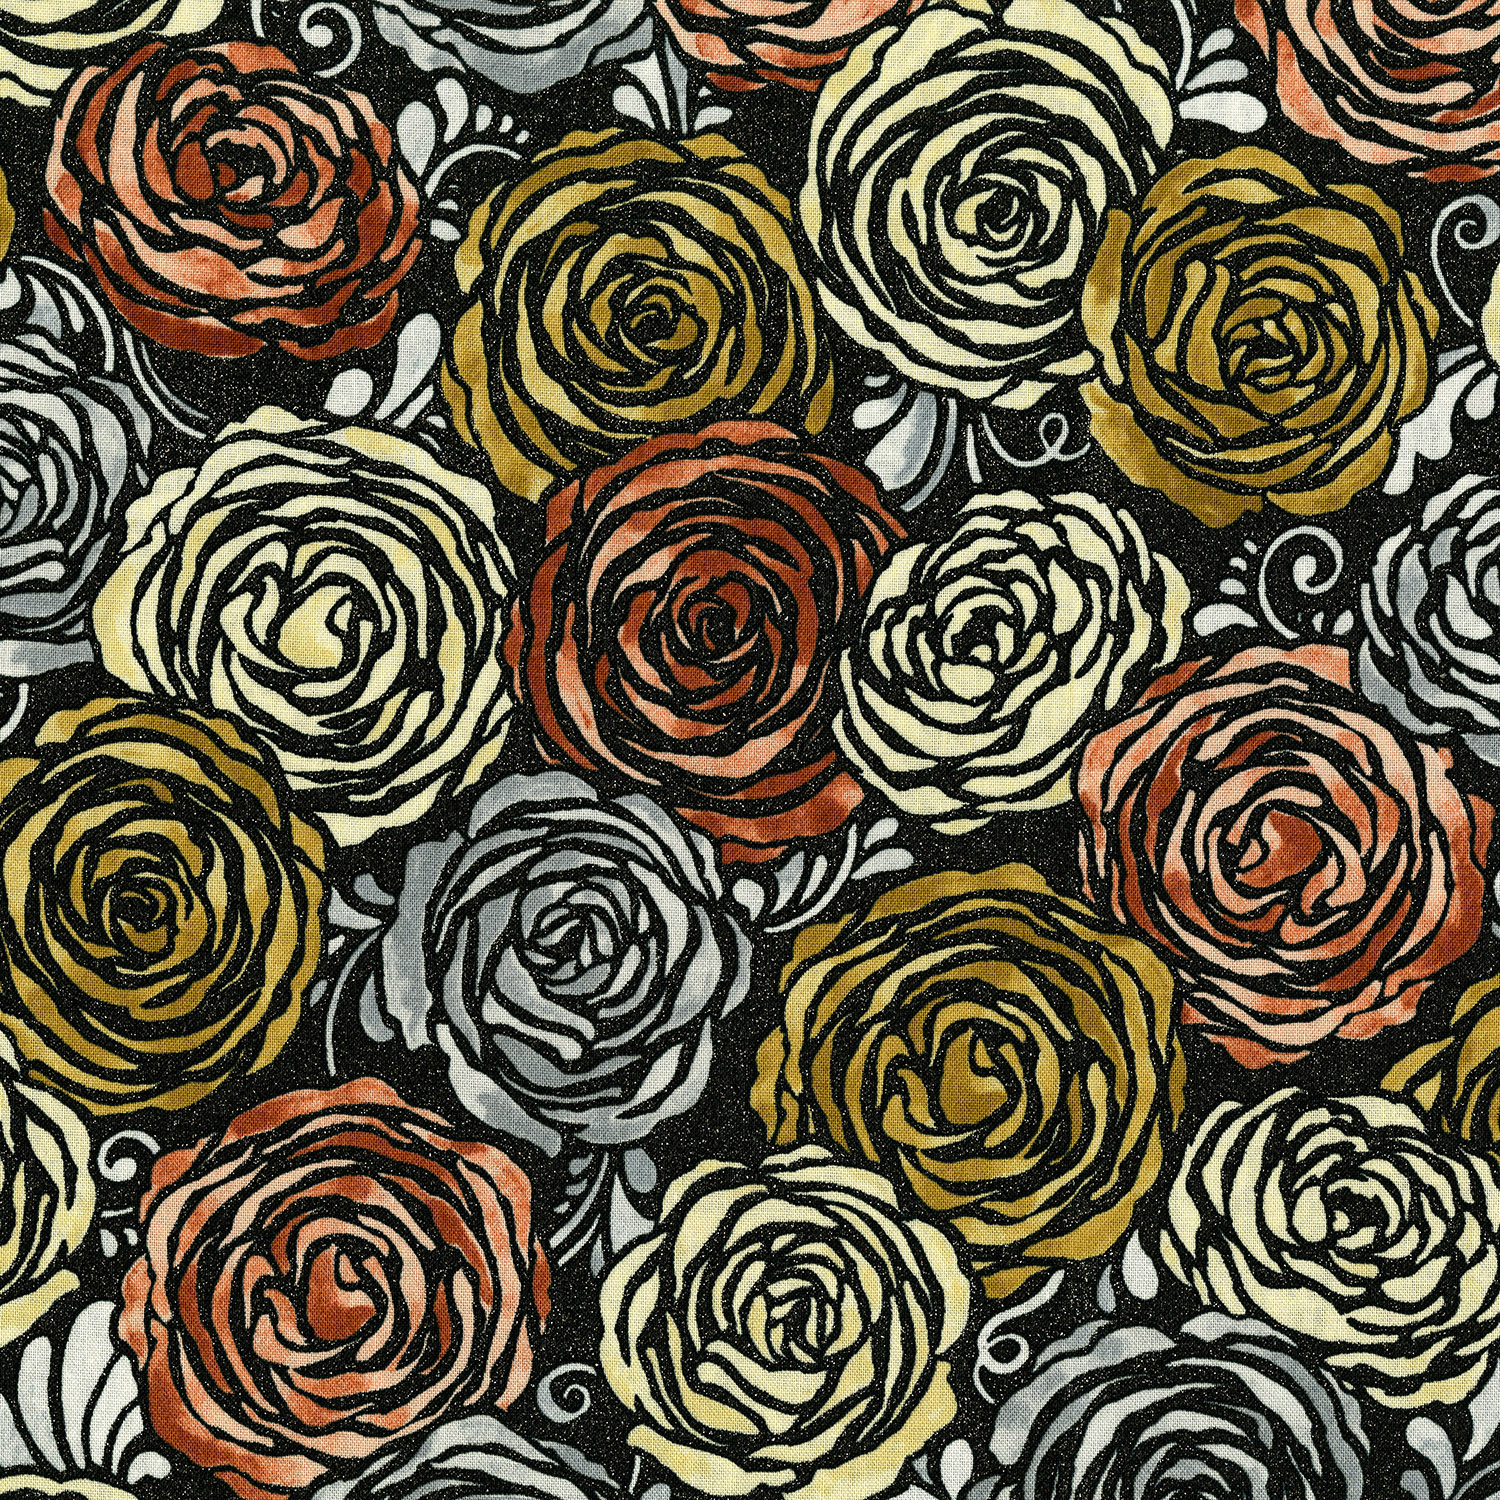 351  3-001 CANDIED ROSES-RADIANT ROSE GOLD